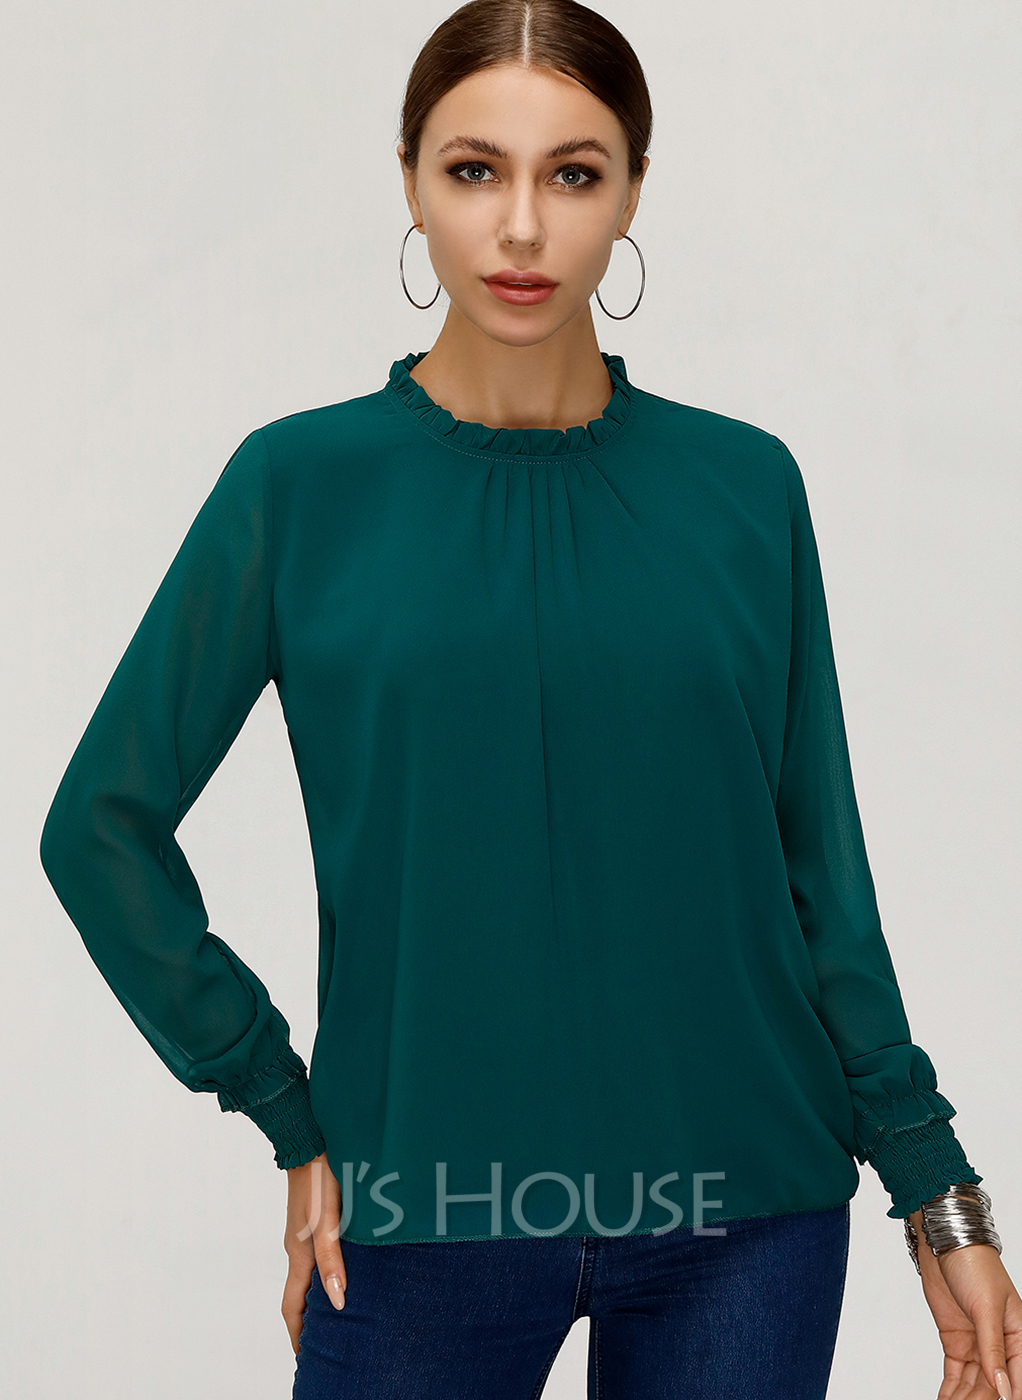 Long Sleeves Chiffon Stand collar Does not include accessories. Blouses